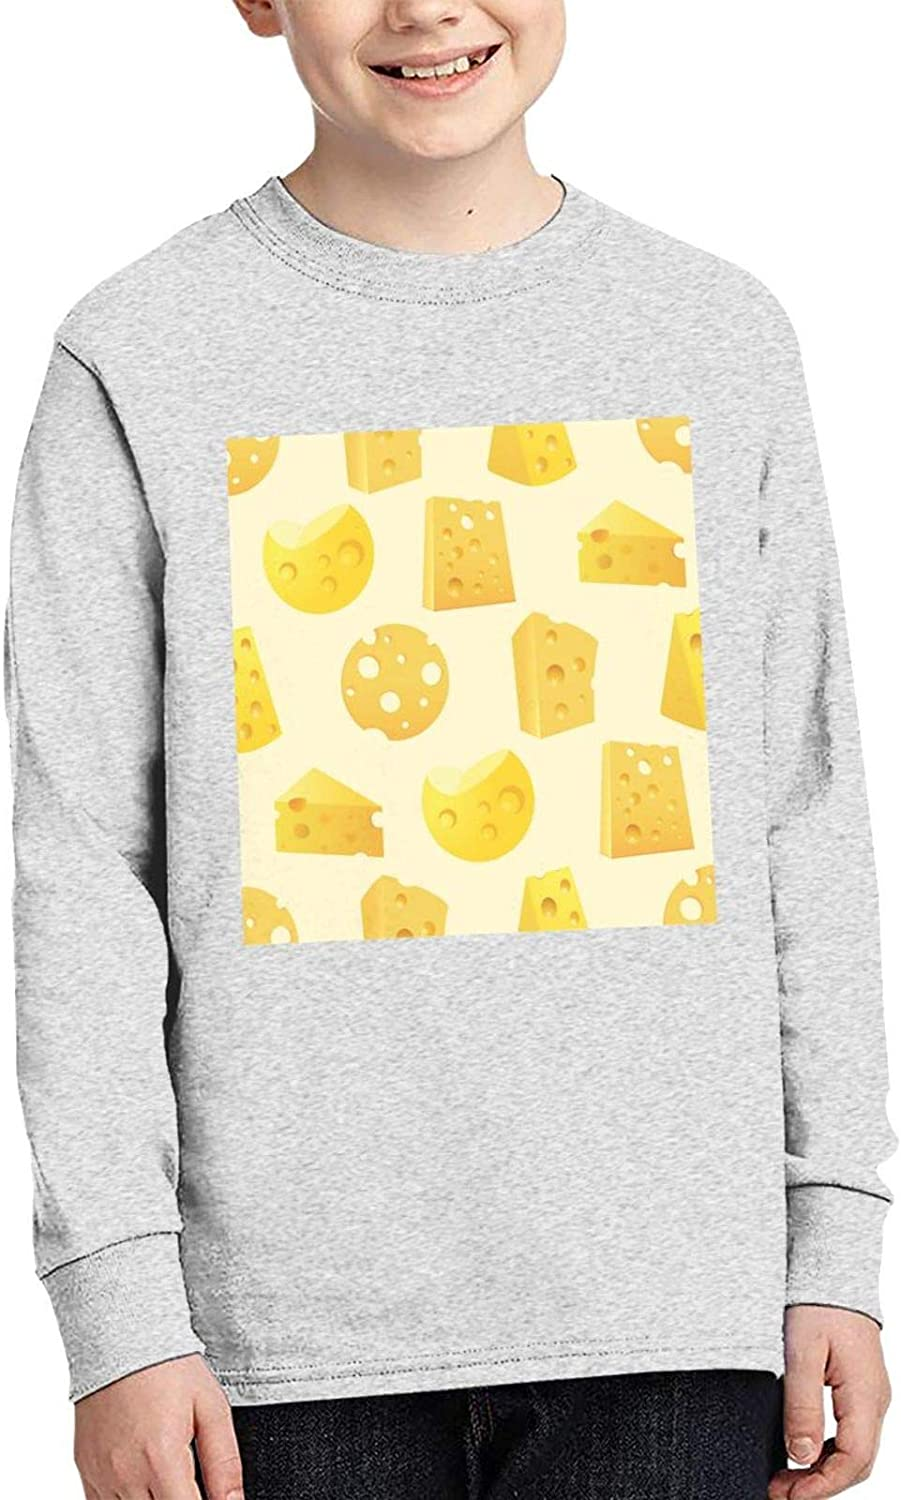 Tasty Slices of Cheese Max 56% OFF Sweater and Limited time for free shipping Fashion Children' Comfortable